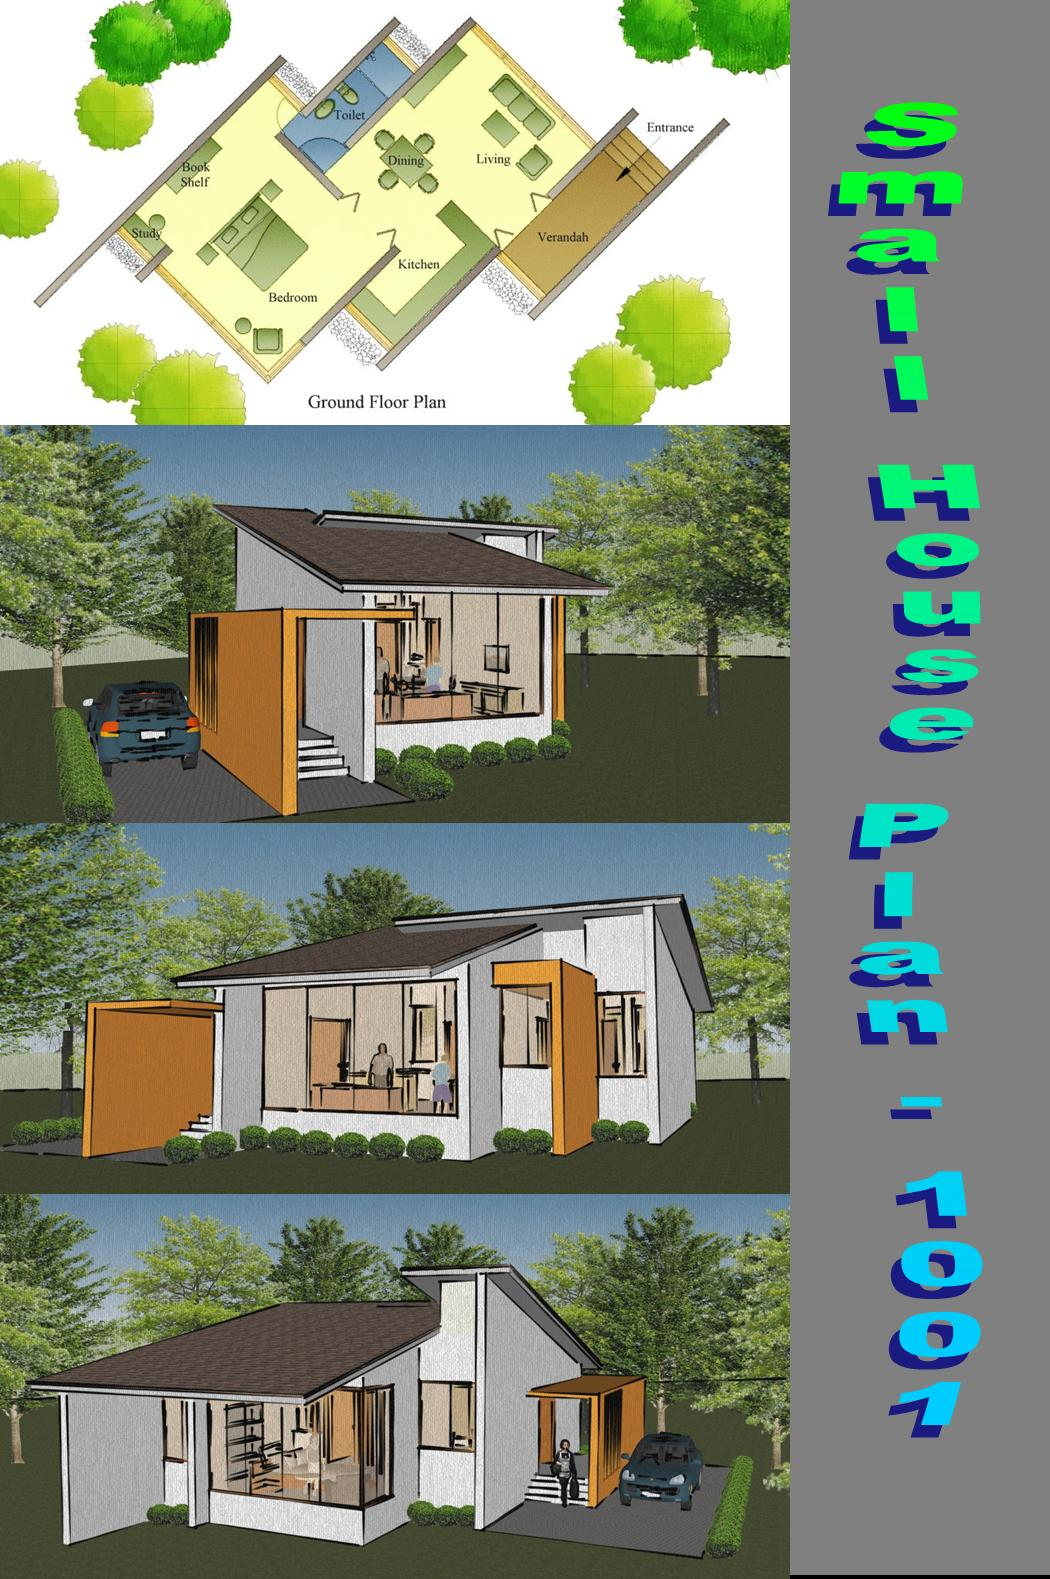 Home plans in india 5 best small home plans from for House plans india free